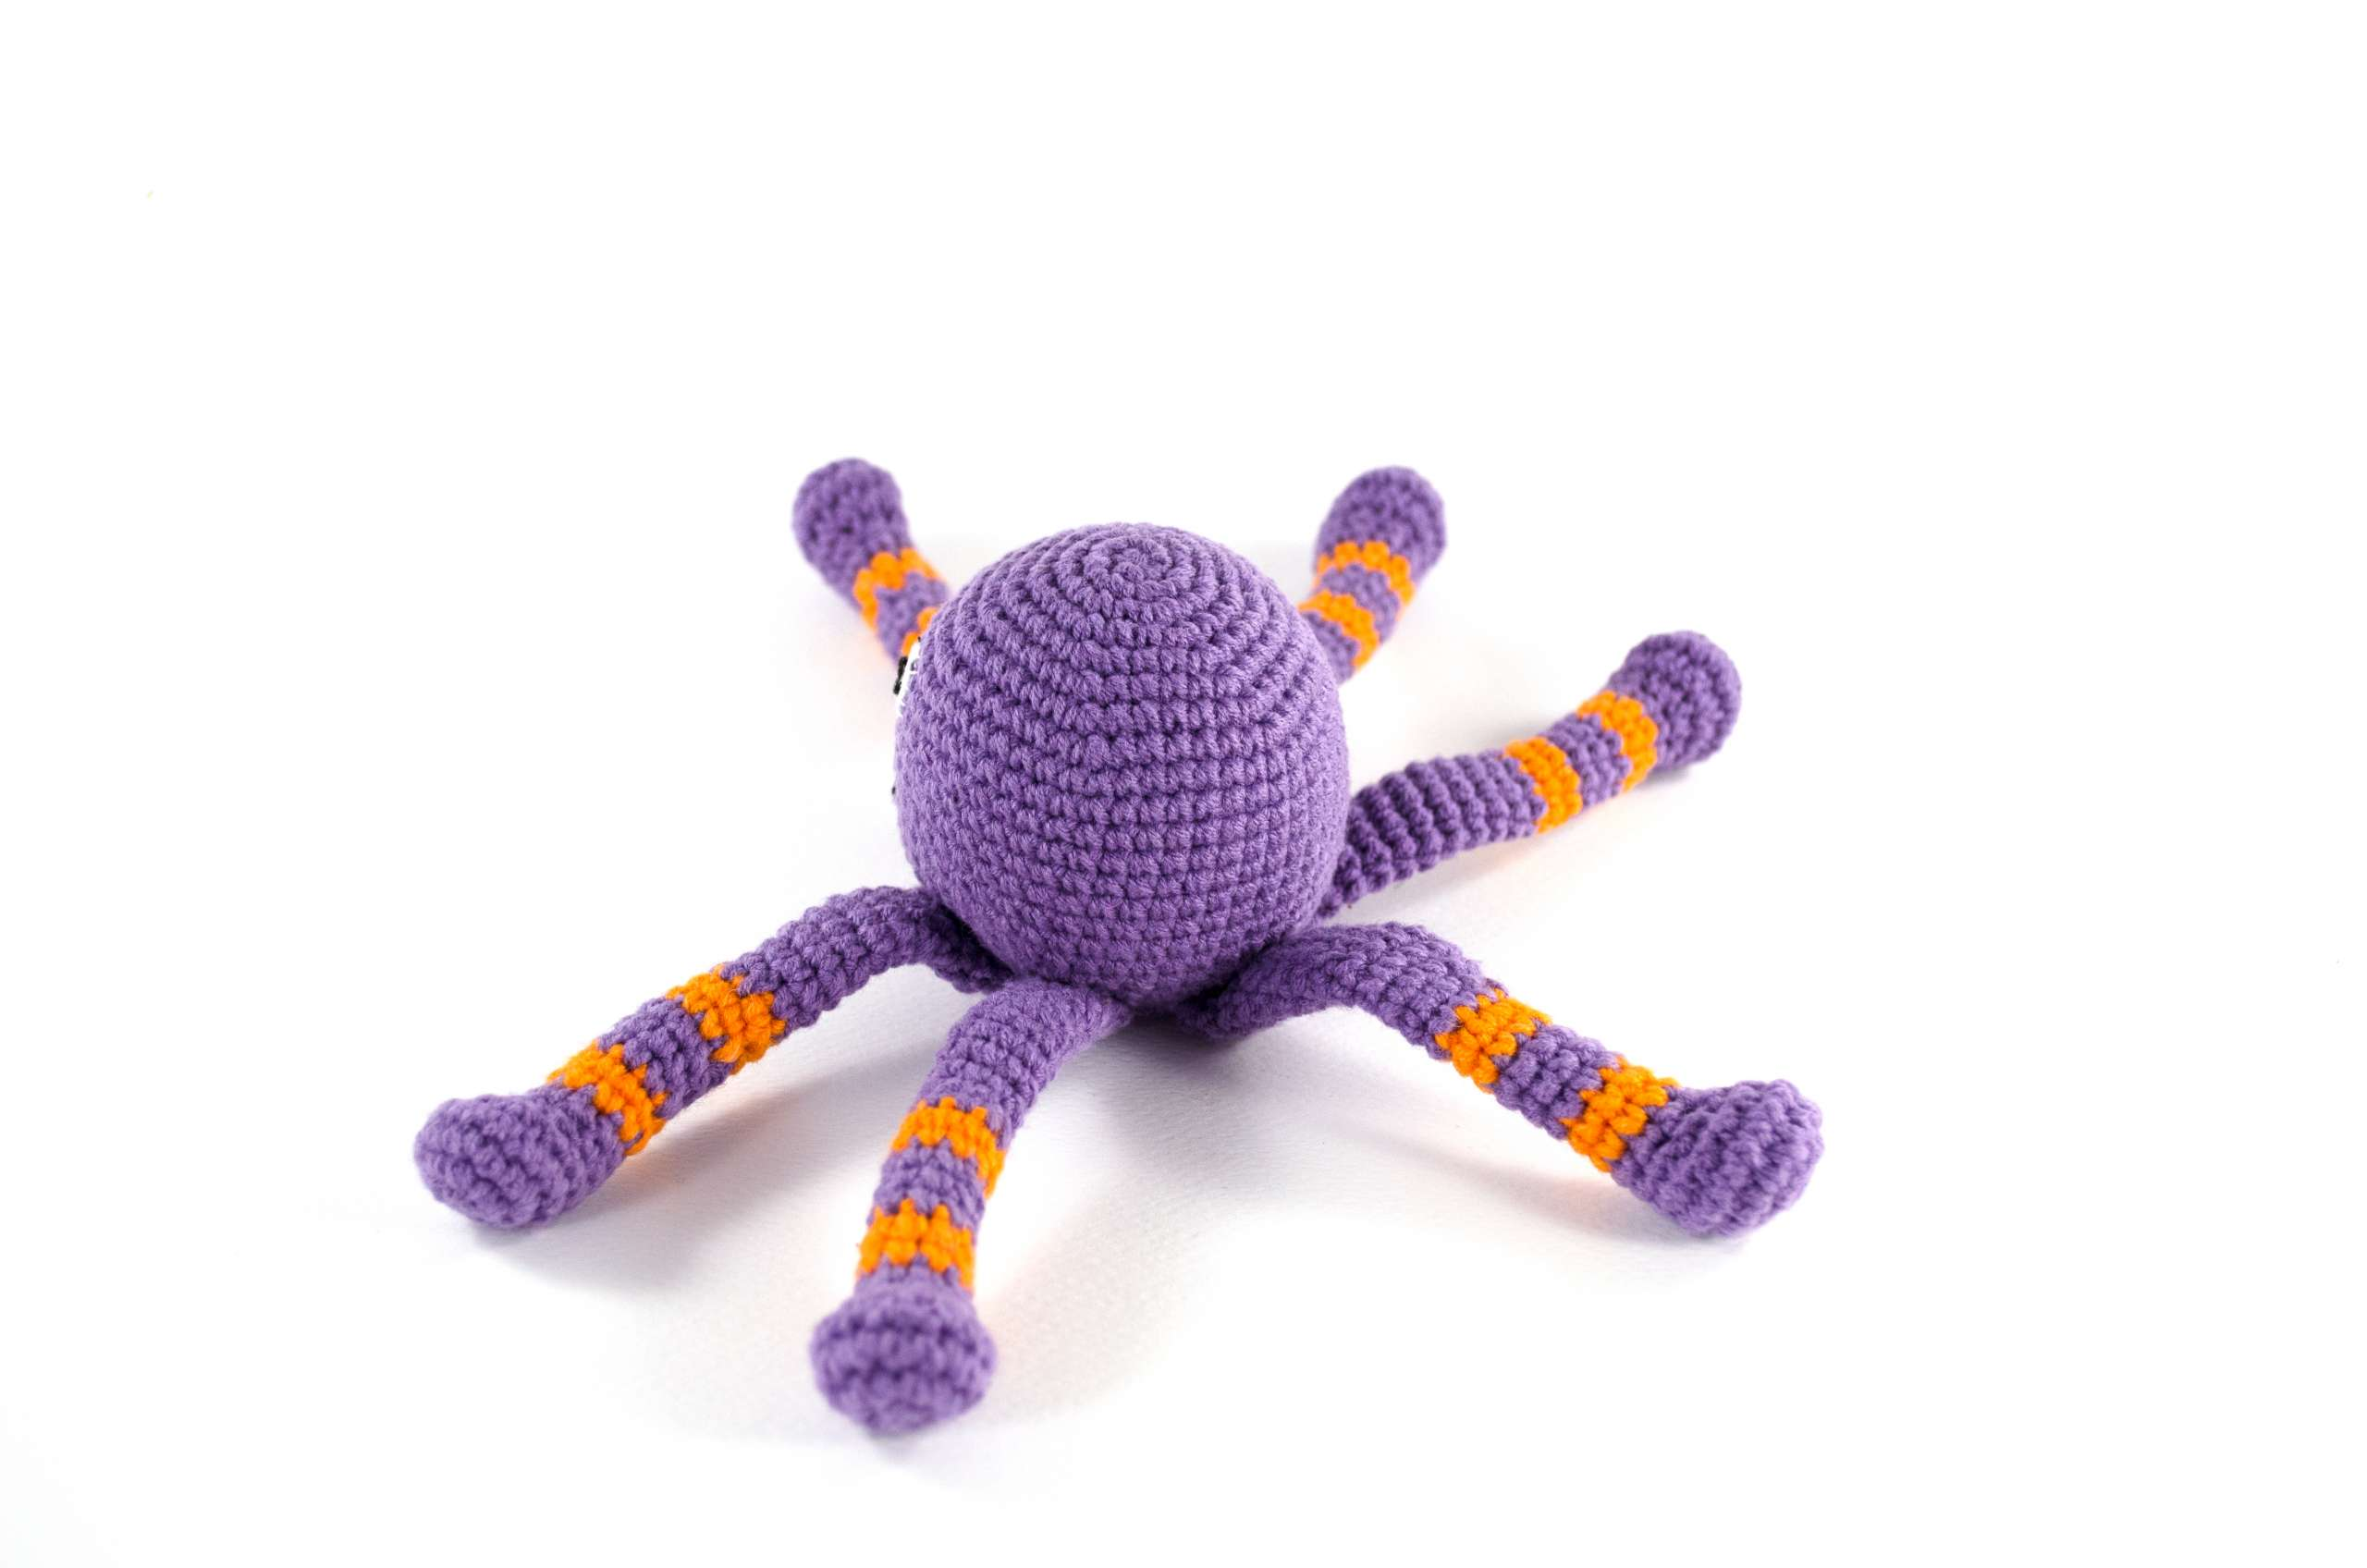 crochet spider back view